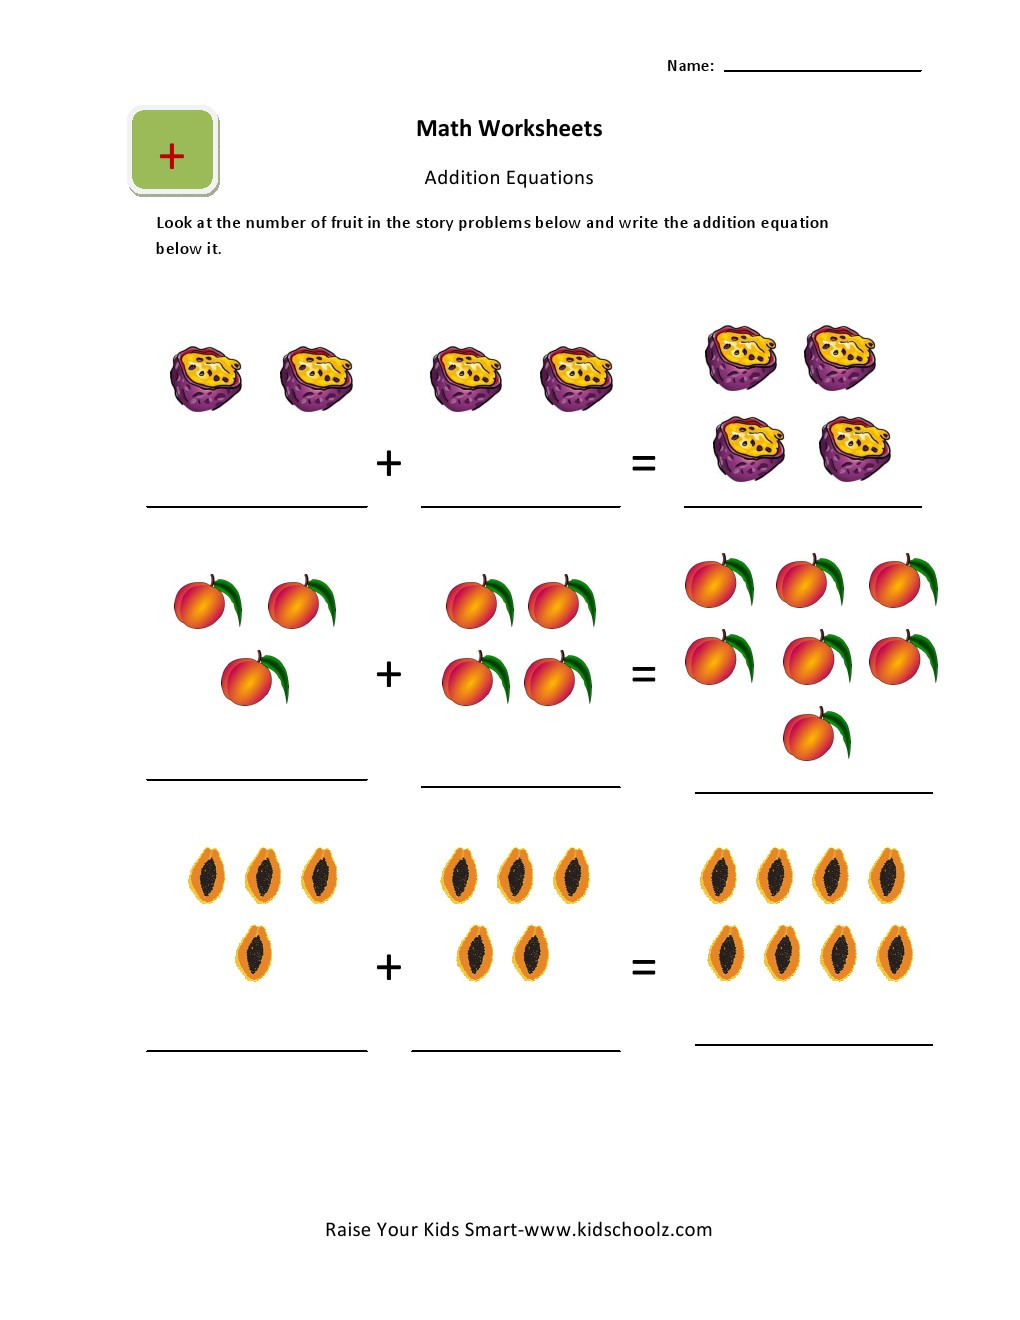 Addition Activities Worksheets For UKG Kids -